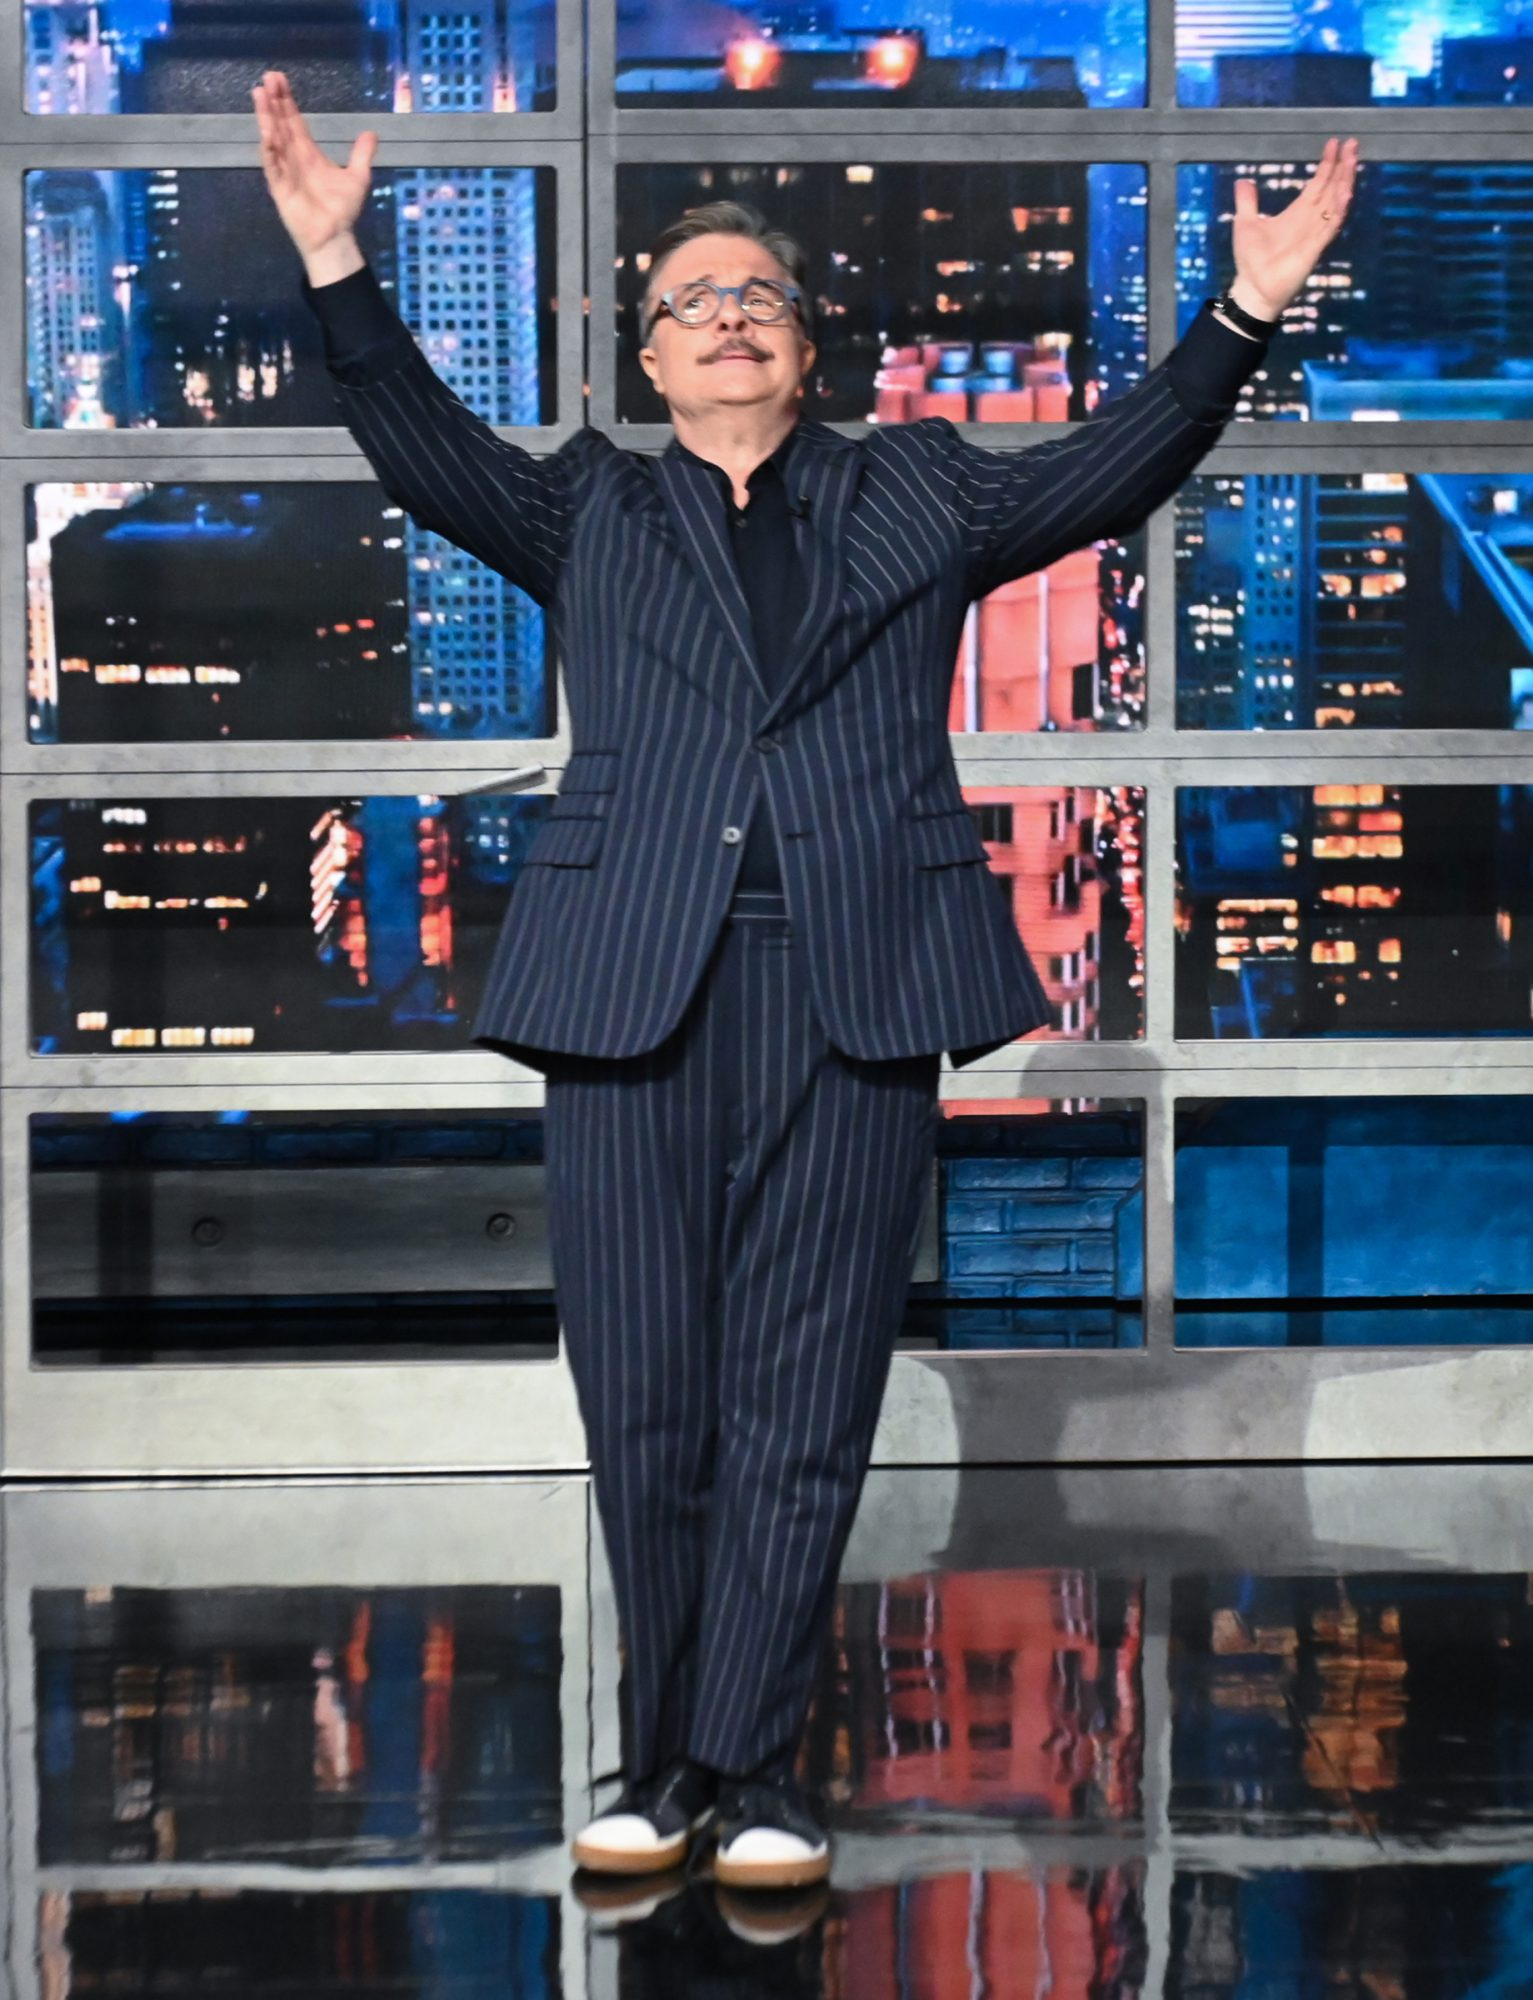 The Late Show with Stephen Colbert with guest Nathan Lane during Thursday's June 17, 2021 show.